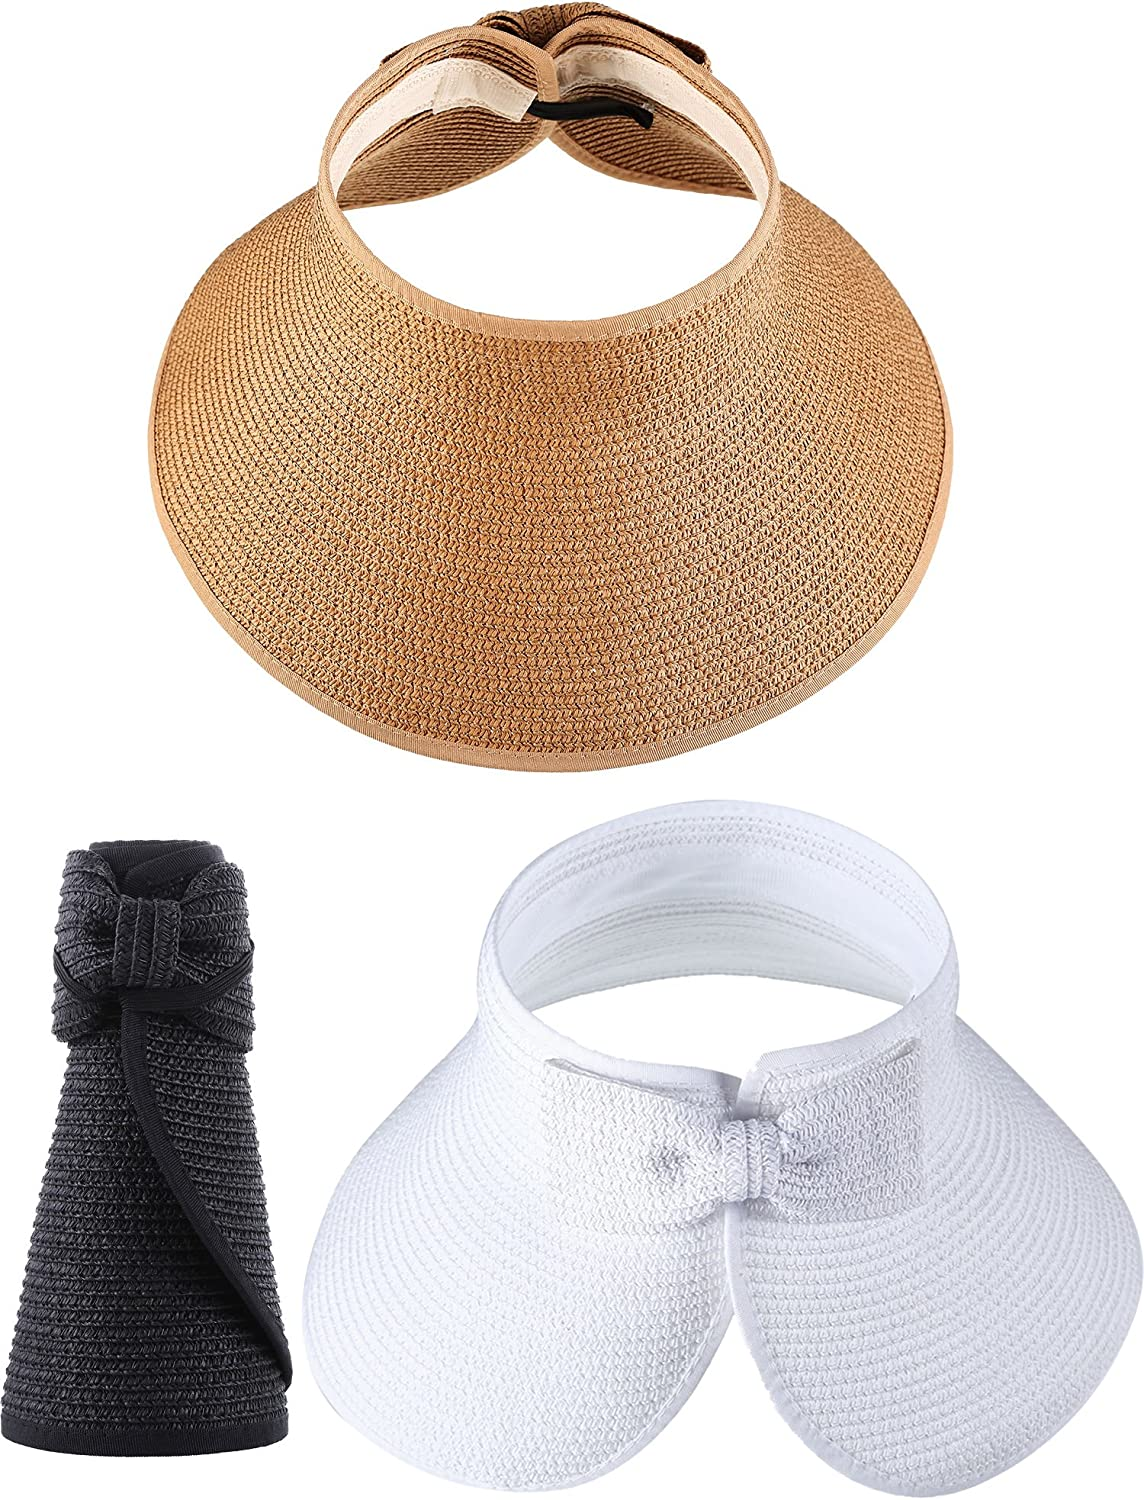 Hestya 3 Pieces Wide Brim Sun Visor Foldable Rollup Straw Sun Visor for Women Girls Beach Seaside Holiday, 3 colors